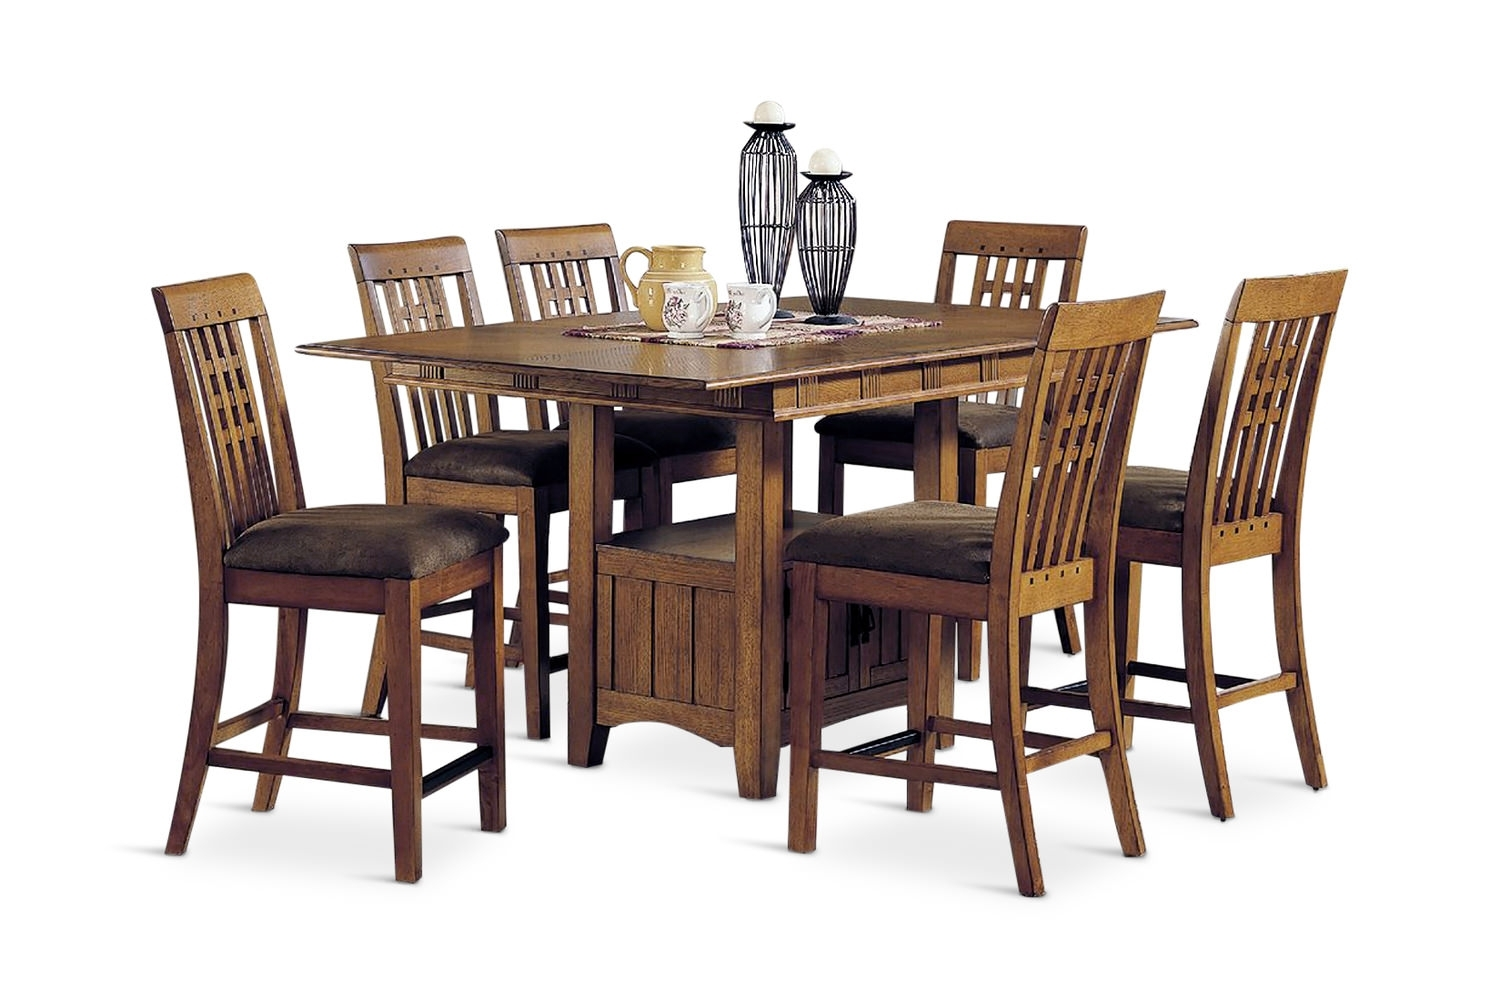 Dining Sets – Kitchen & Dining Room Sets – Hom Furniture For Newest Craftsman 5 Piece Round Dining Sets With Uph Side Chairs (Image 6 of 20)